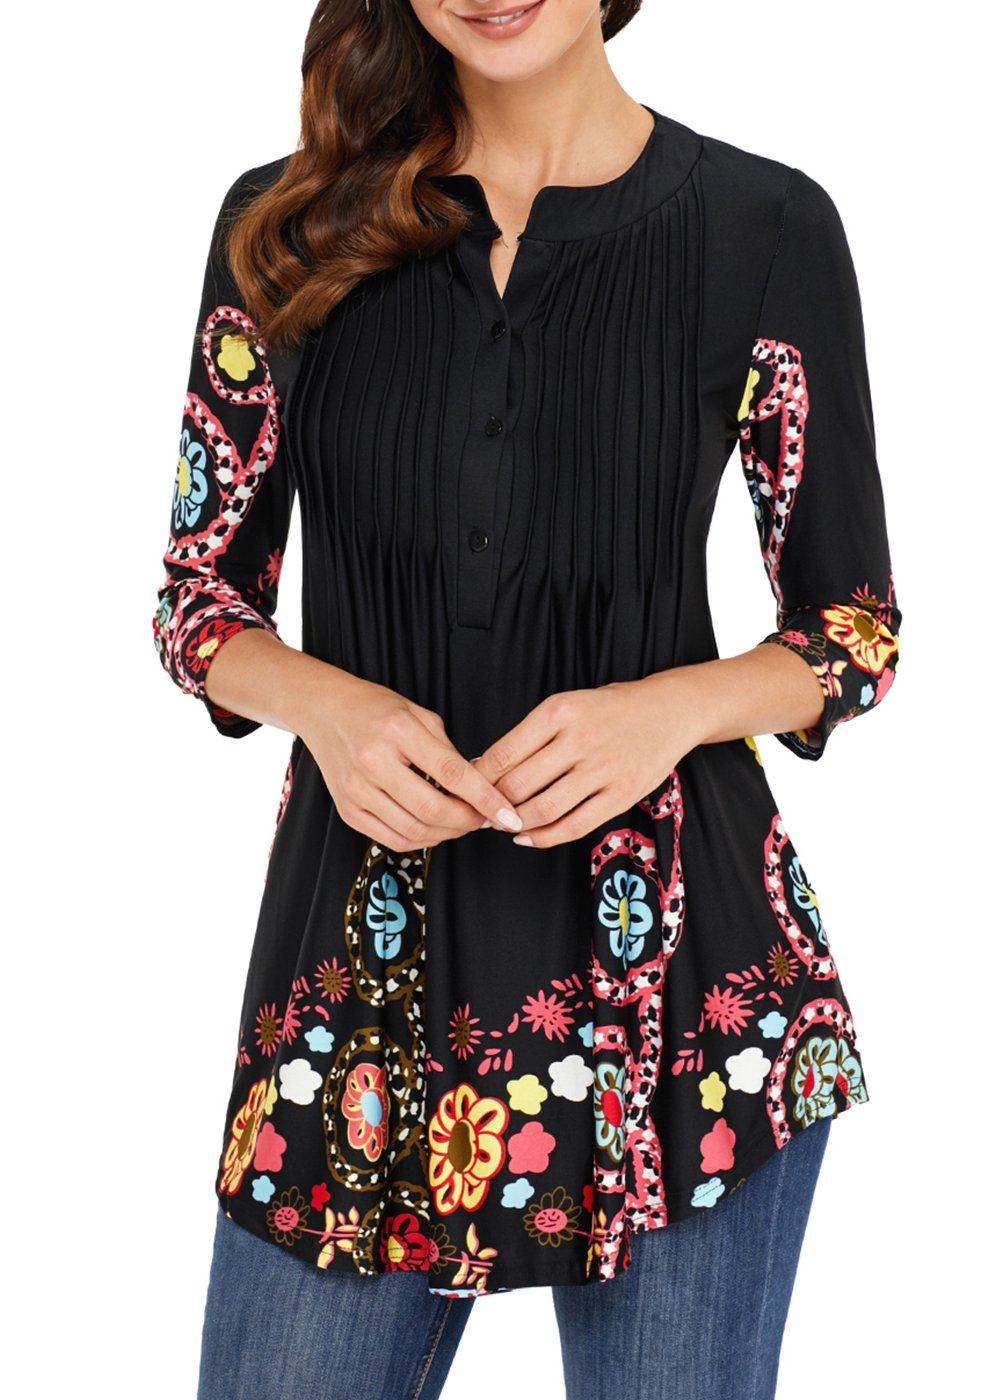 Aincrso Women Floral Tunic with 3/4 Sleeves - Long Casual Floral Shirt Blouse with Round Neck -Buttons up Top Shirt,Black,Medium